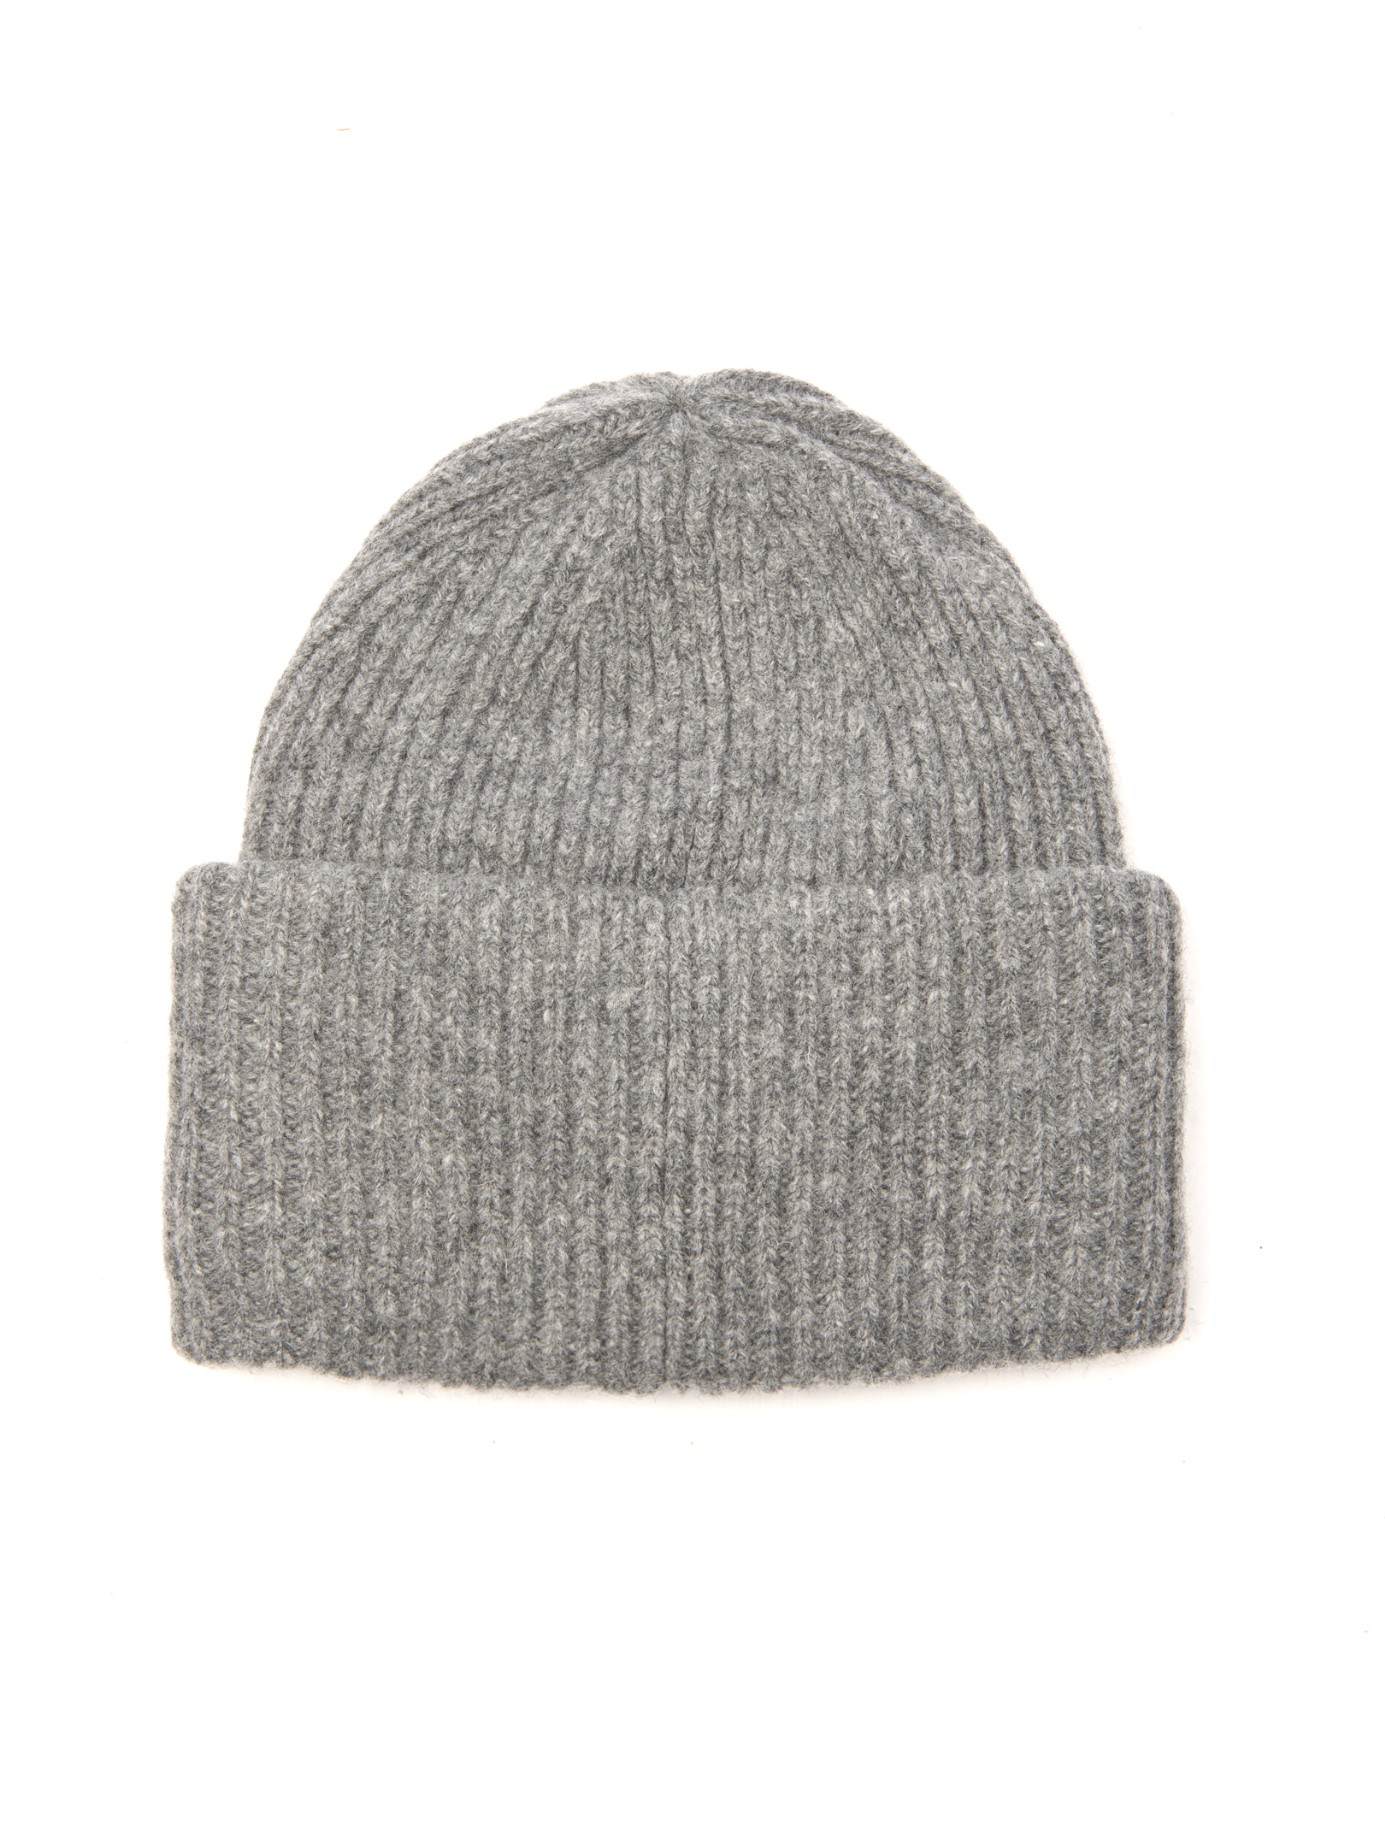 05fd509b130 Lyst - Acne Studios Pansy Ribbed-Knit Wool Beanie in Gray